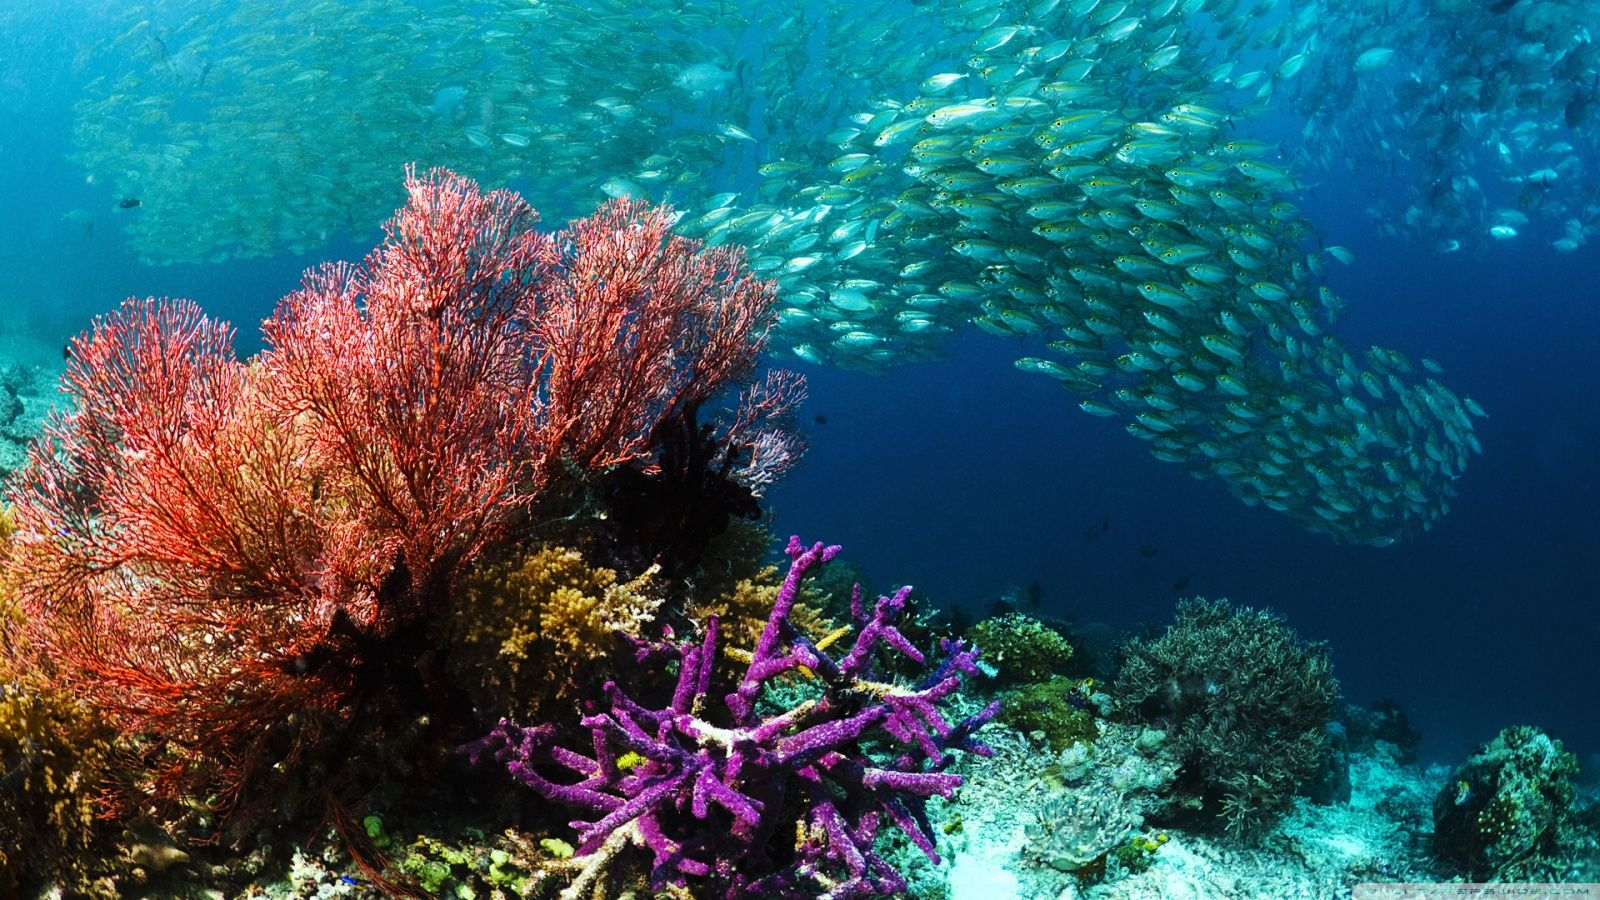 15 Pics Of Amazing Coral Reefs And Fishes Mostbeautifulthings Underwater Wallpaper Ocean Underwater Ocean Images Ocean underwater life fish corals algae